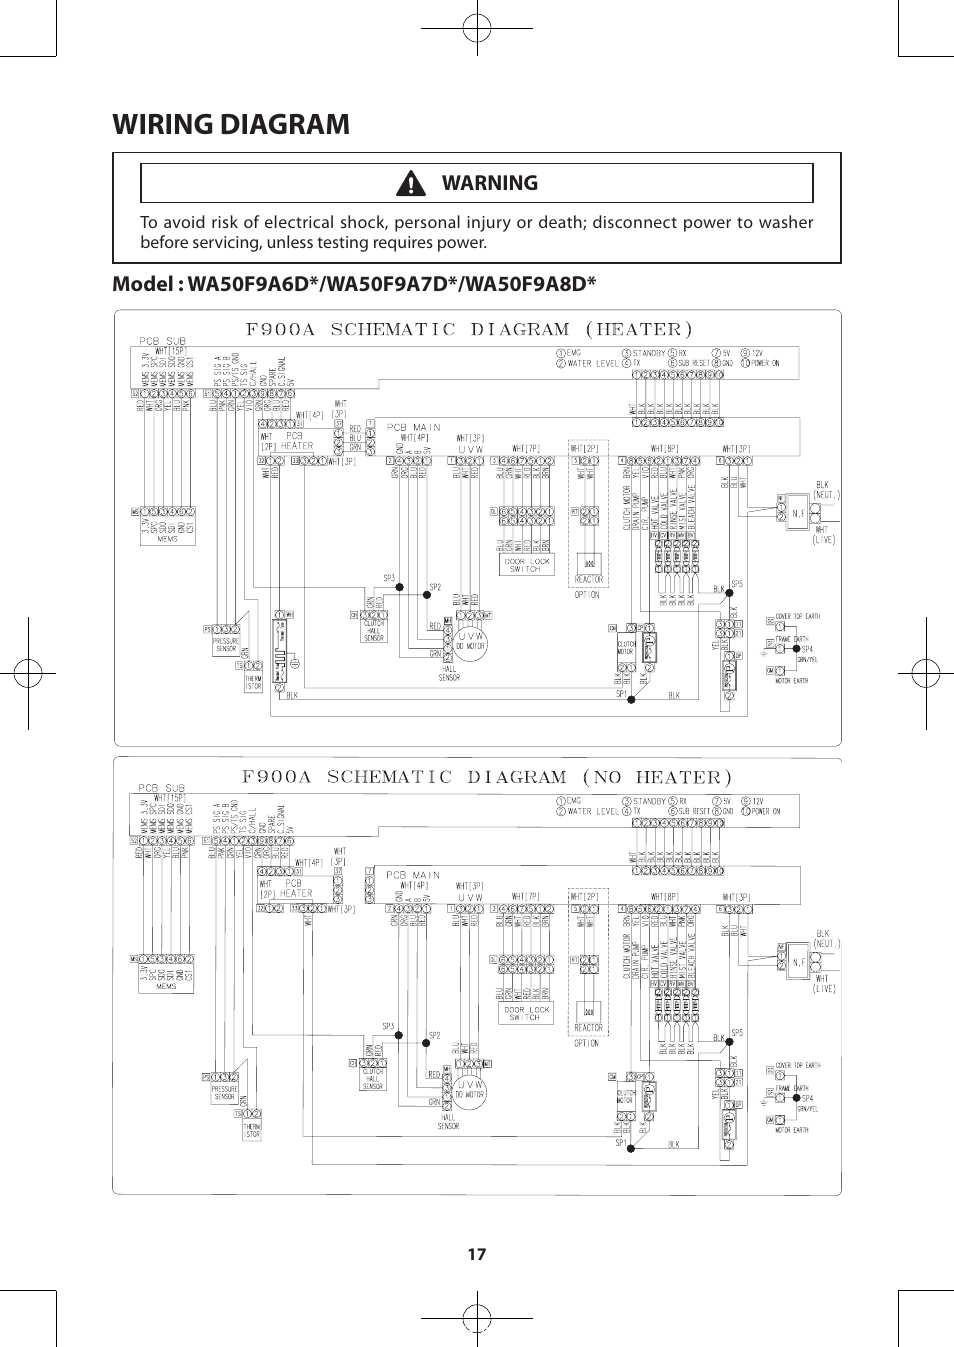 wiring diagram samsung wa50f9a7dsp a2 user manual page 17 60